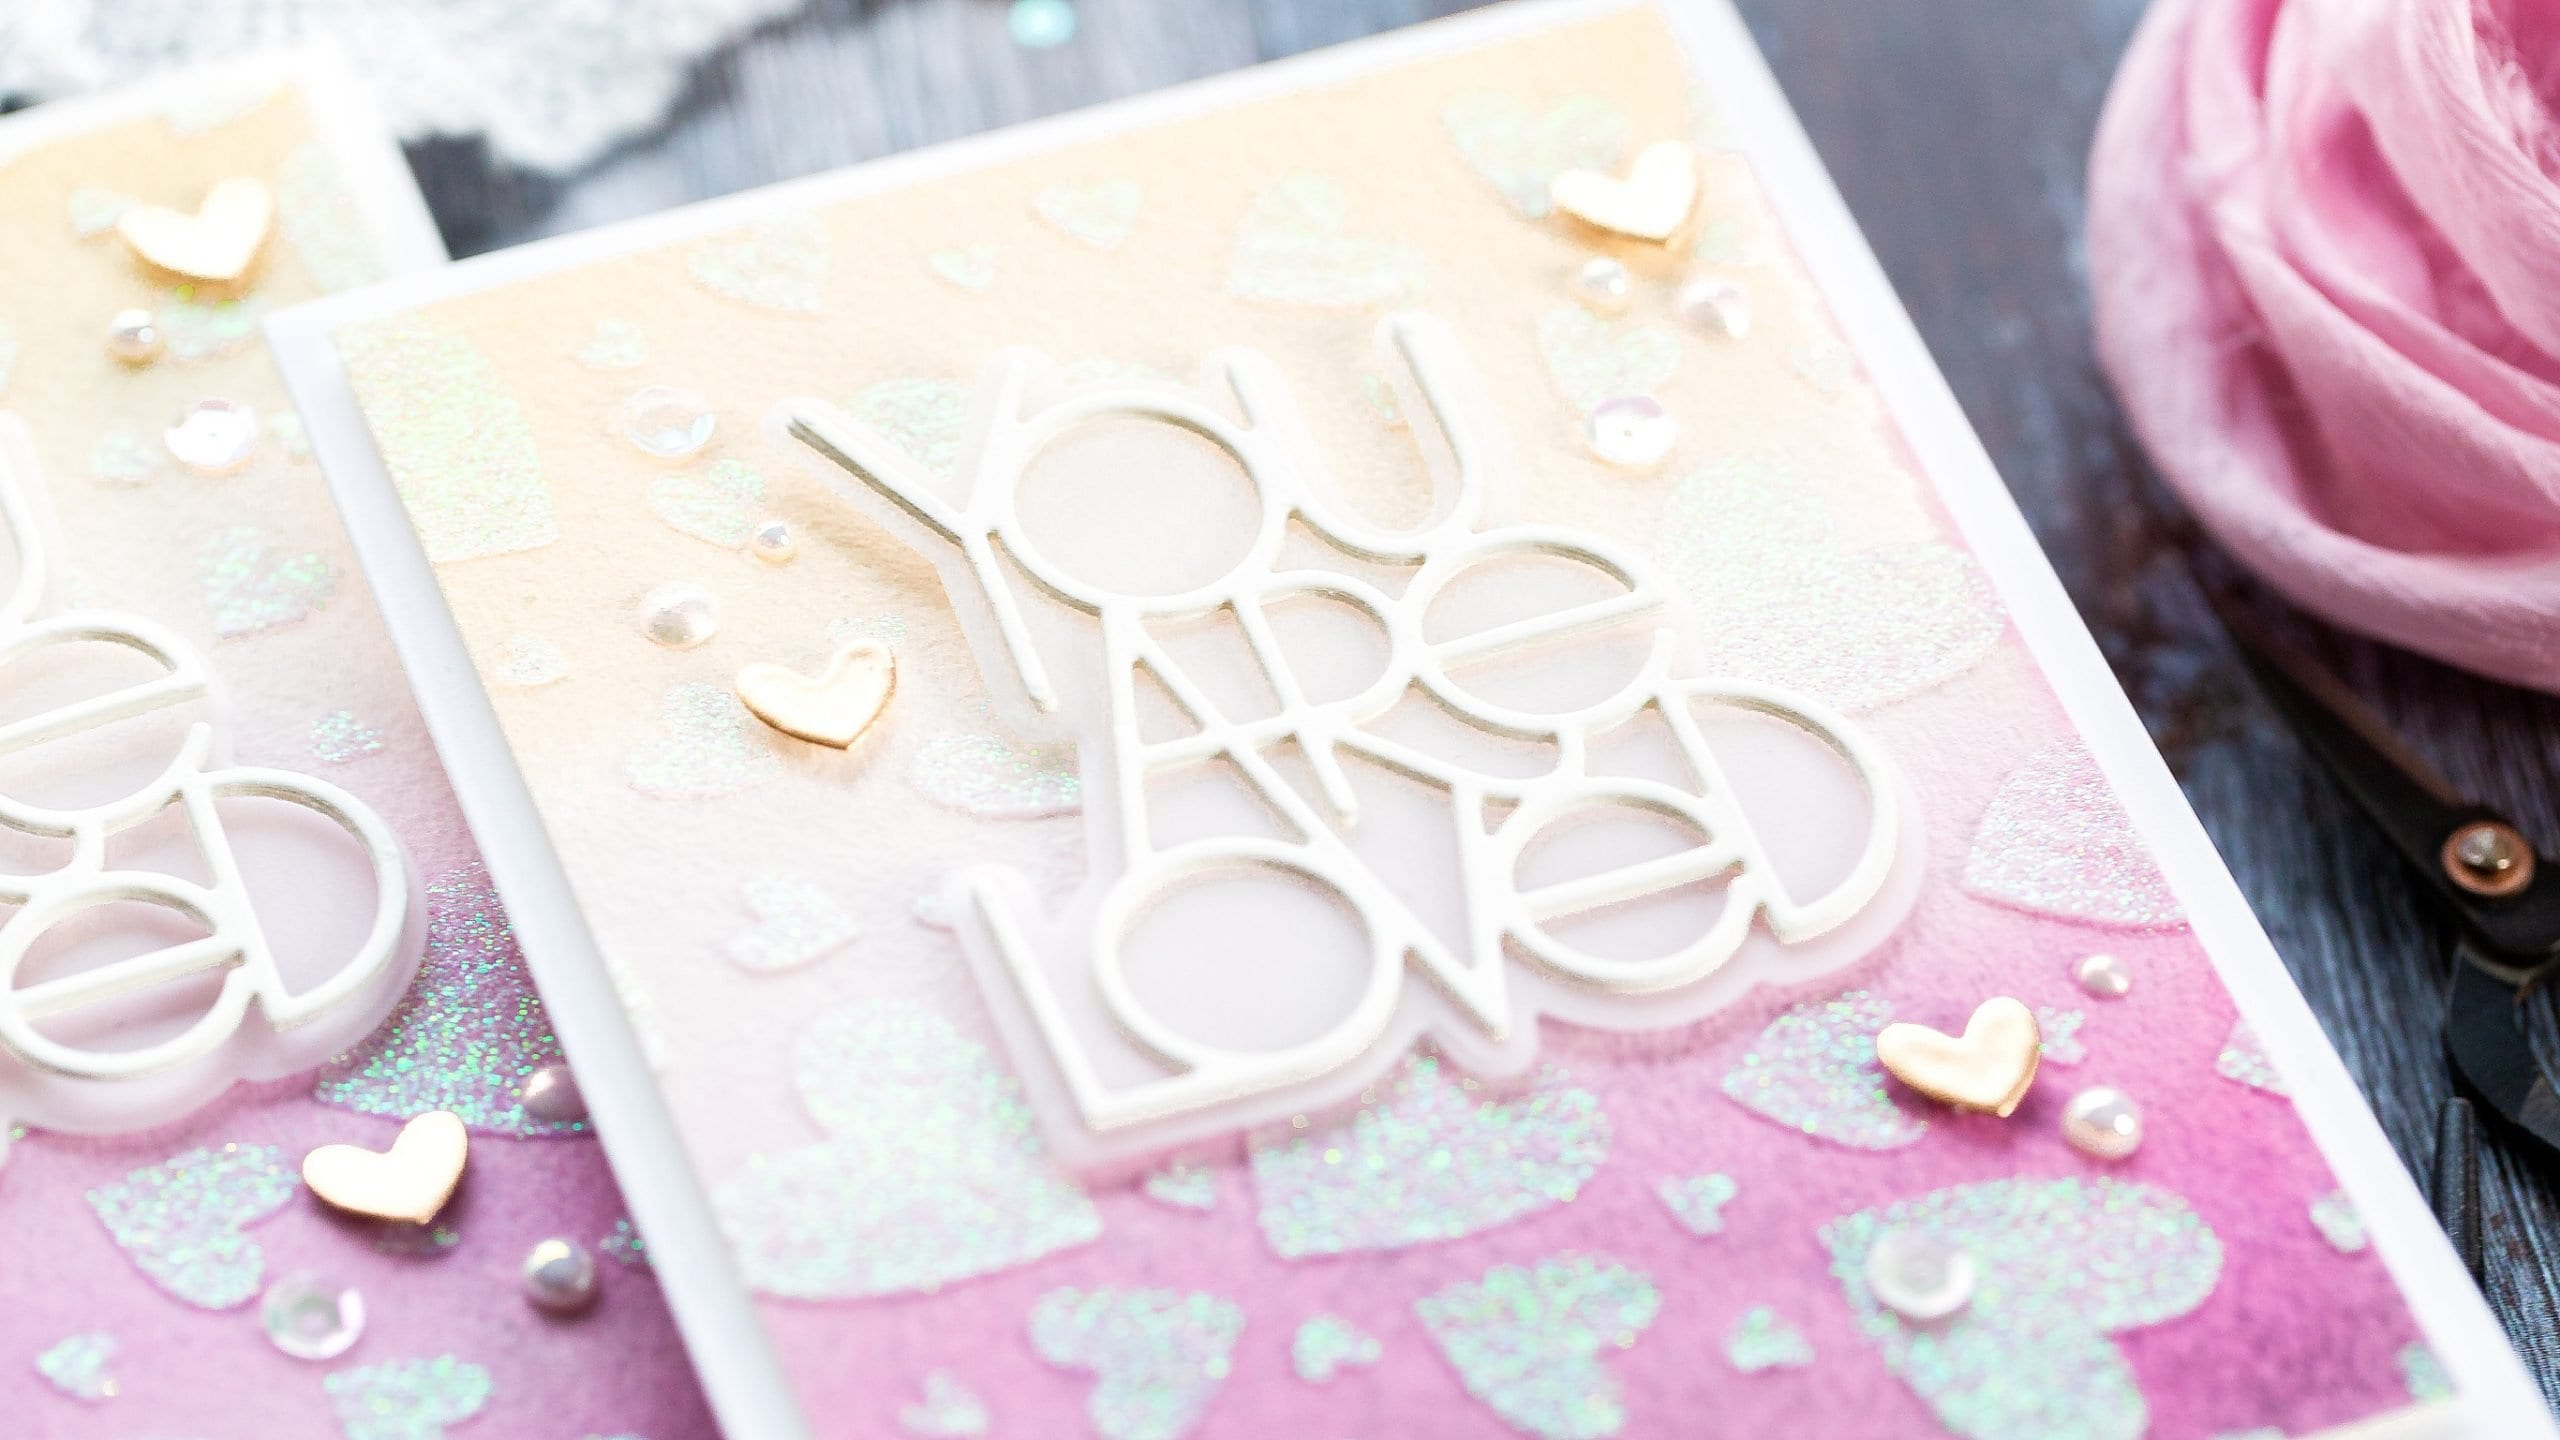 Simple watercolour gradient wash as a backdrop to glittery hearts and a 'You Are Loved' die cut sentiment. Handmade valentine's card by Debby Hughes using supplies from Simon Says Stamp.